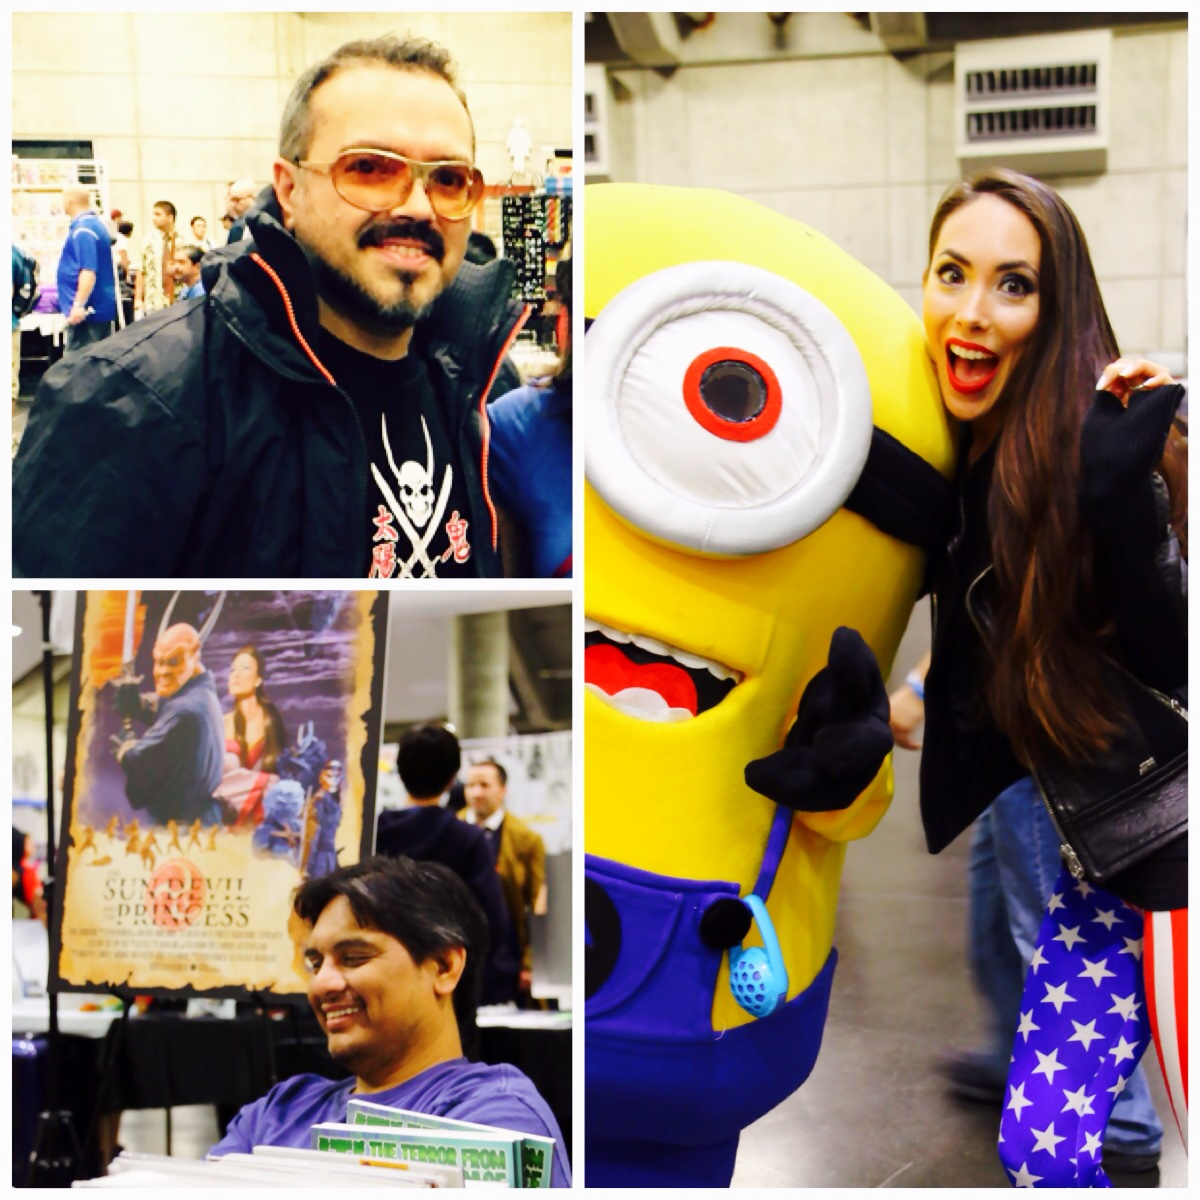 THANK YOU, WIZARD WORLD!!!